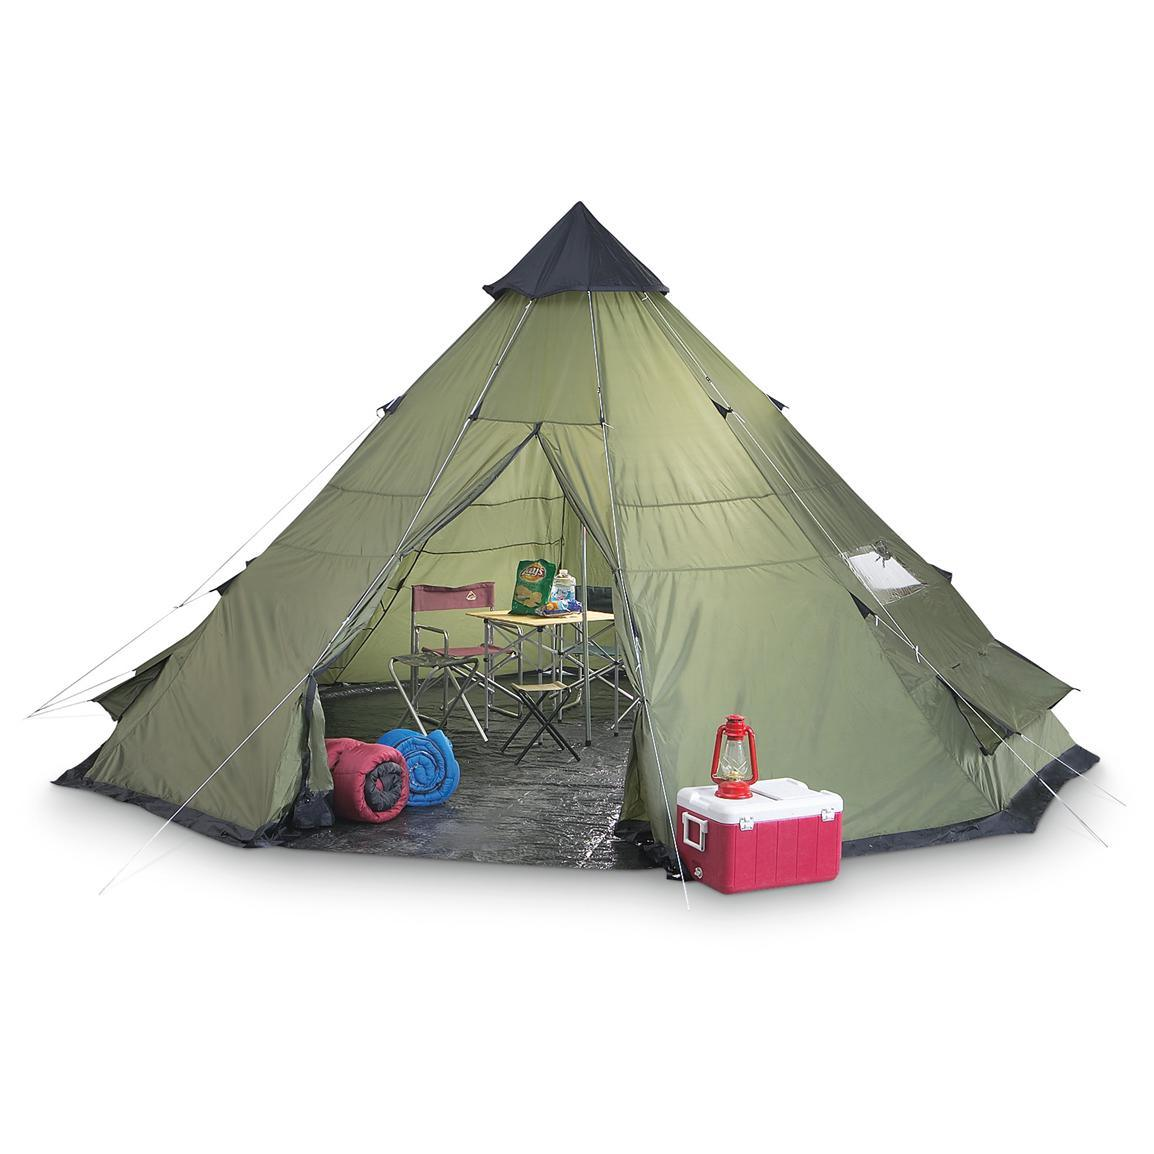 2017 Hot Selling Big Camping Bell Rock Indian Teepee Camping Tent pictures & photos